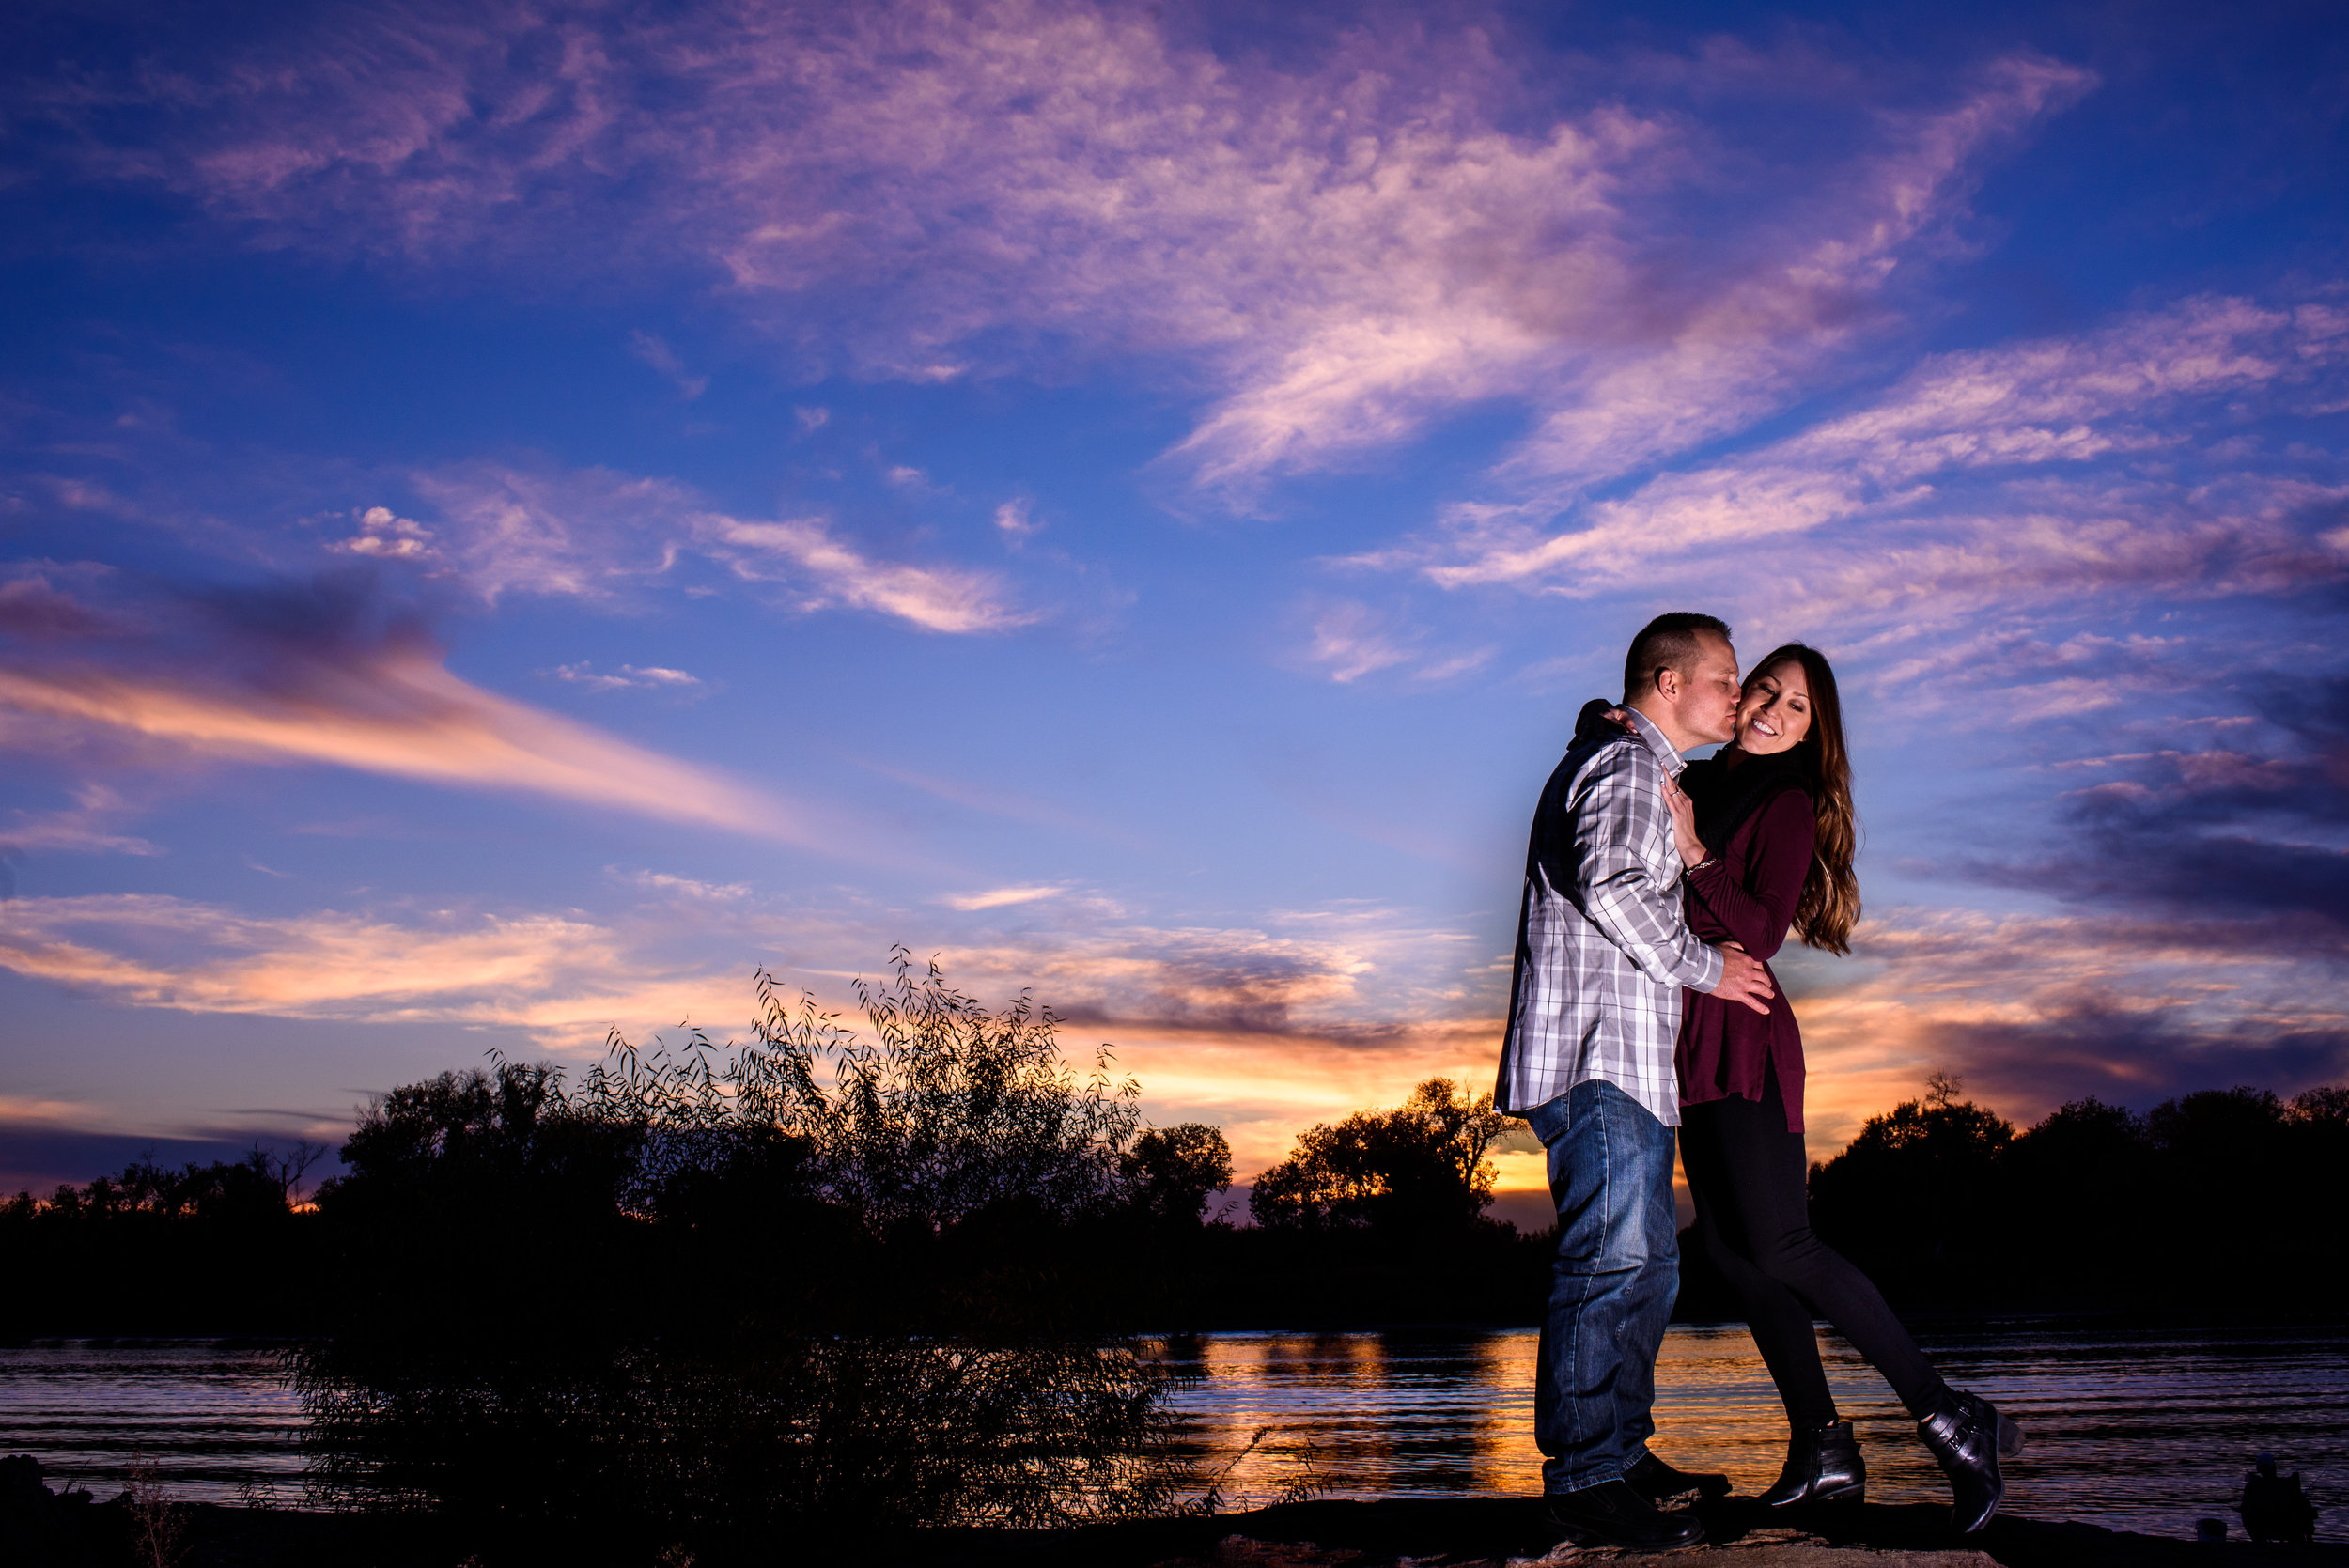 nicole-luke-013-sacramento-engagement-wedding-photographer-katherine-nicole-photography.JPG